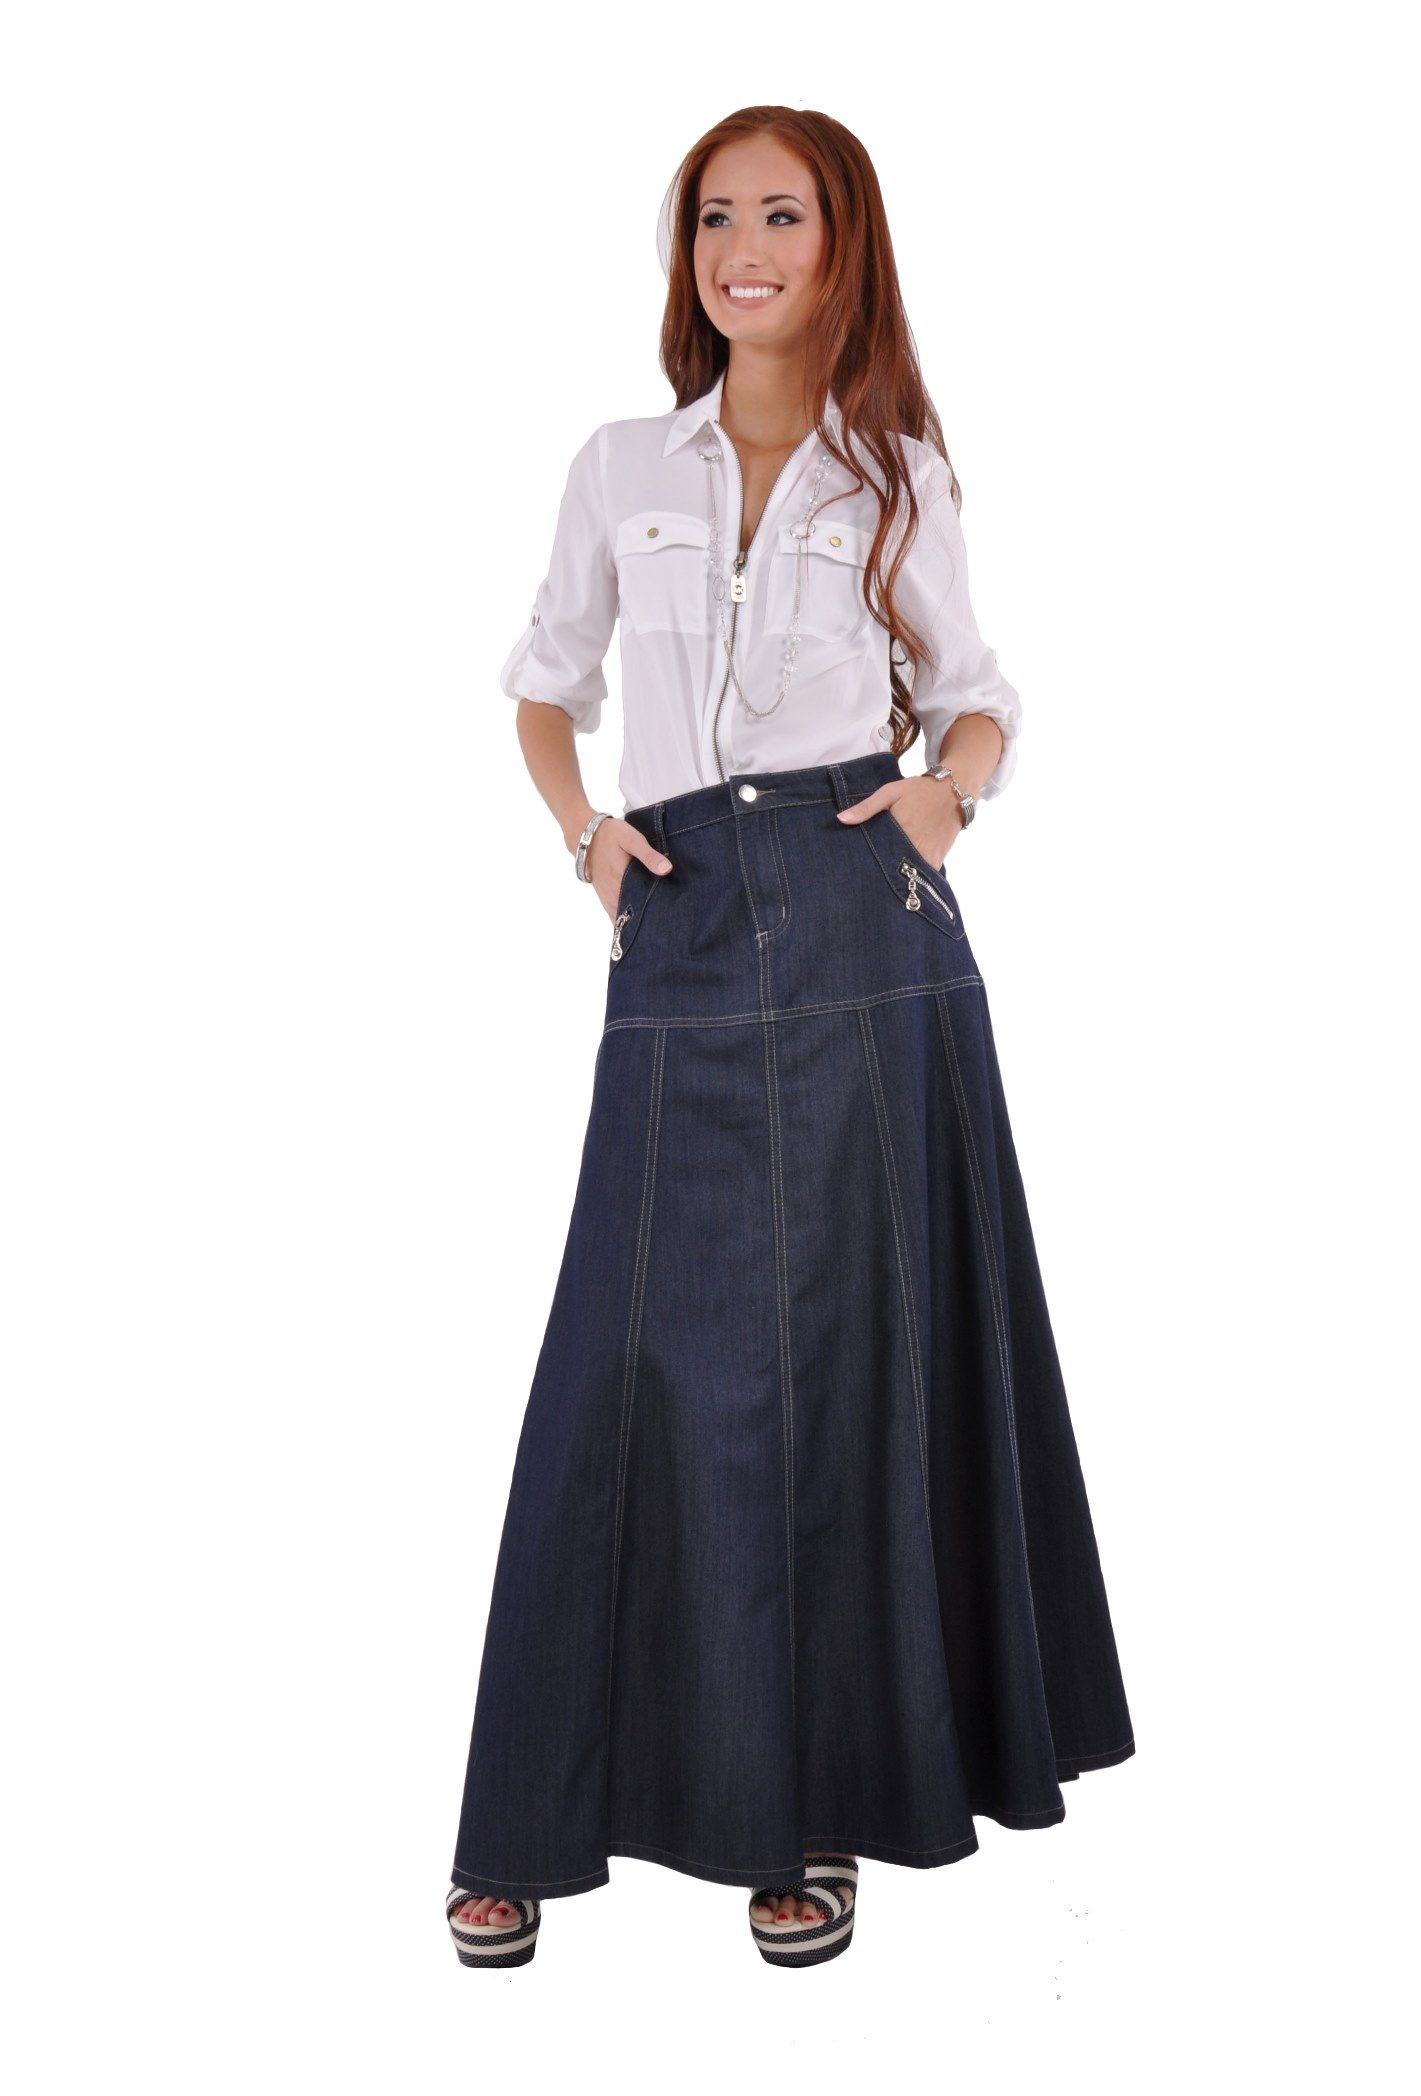 Navy Classy Long Jean Skirt | Denim Skirts | Pinterest | Skirts Jean skirts and Classy